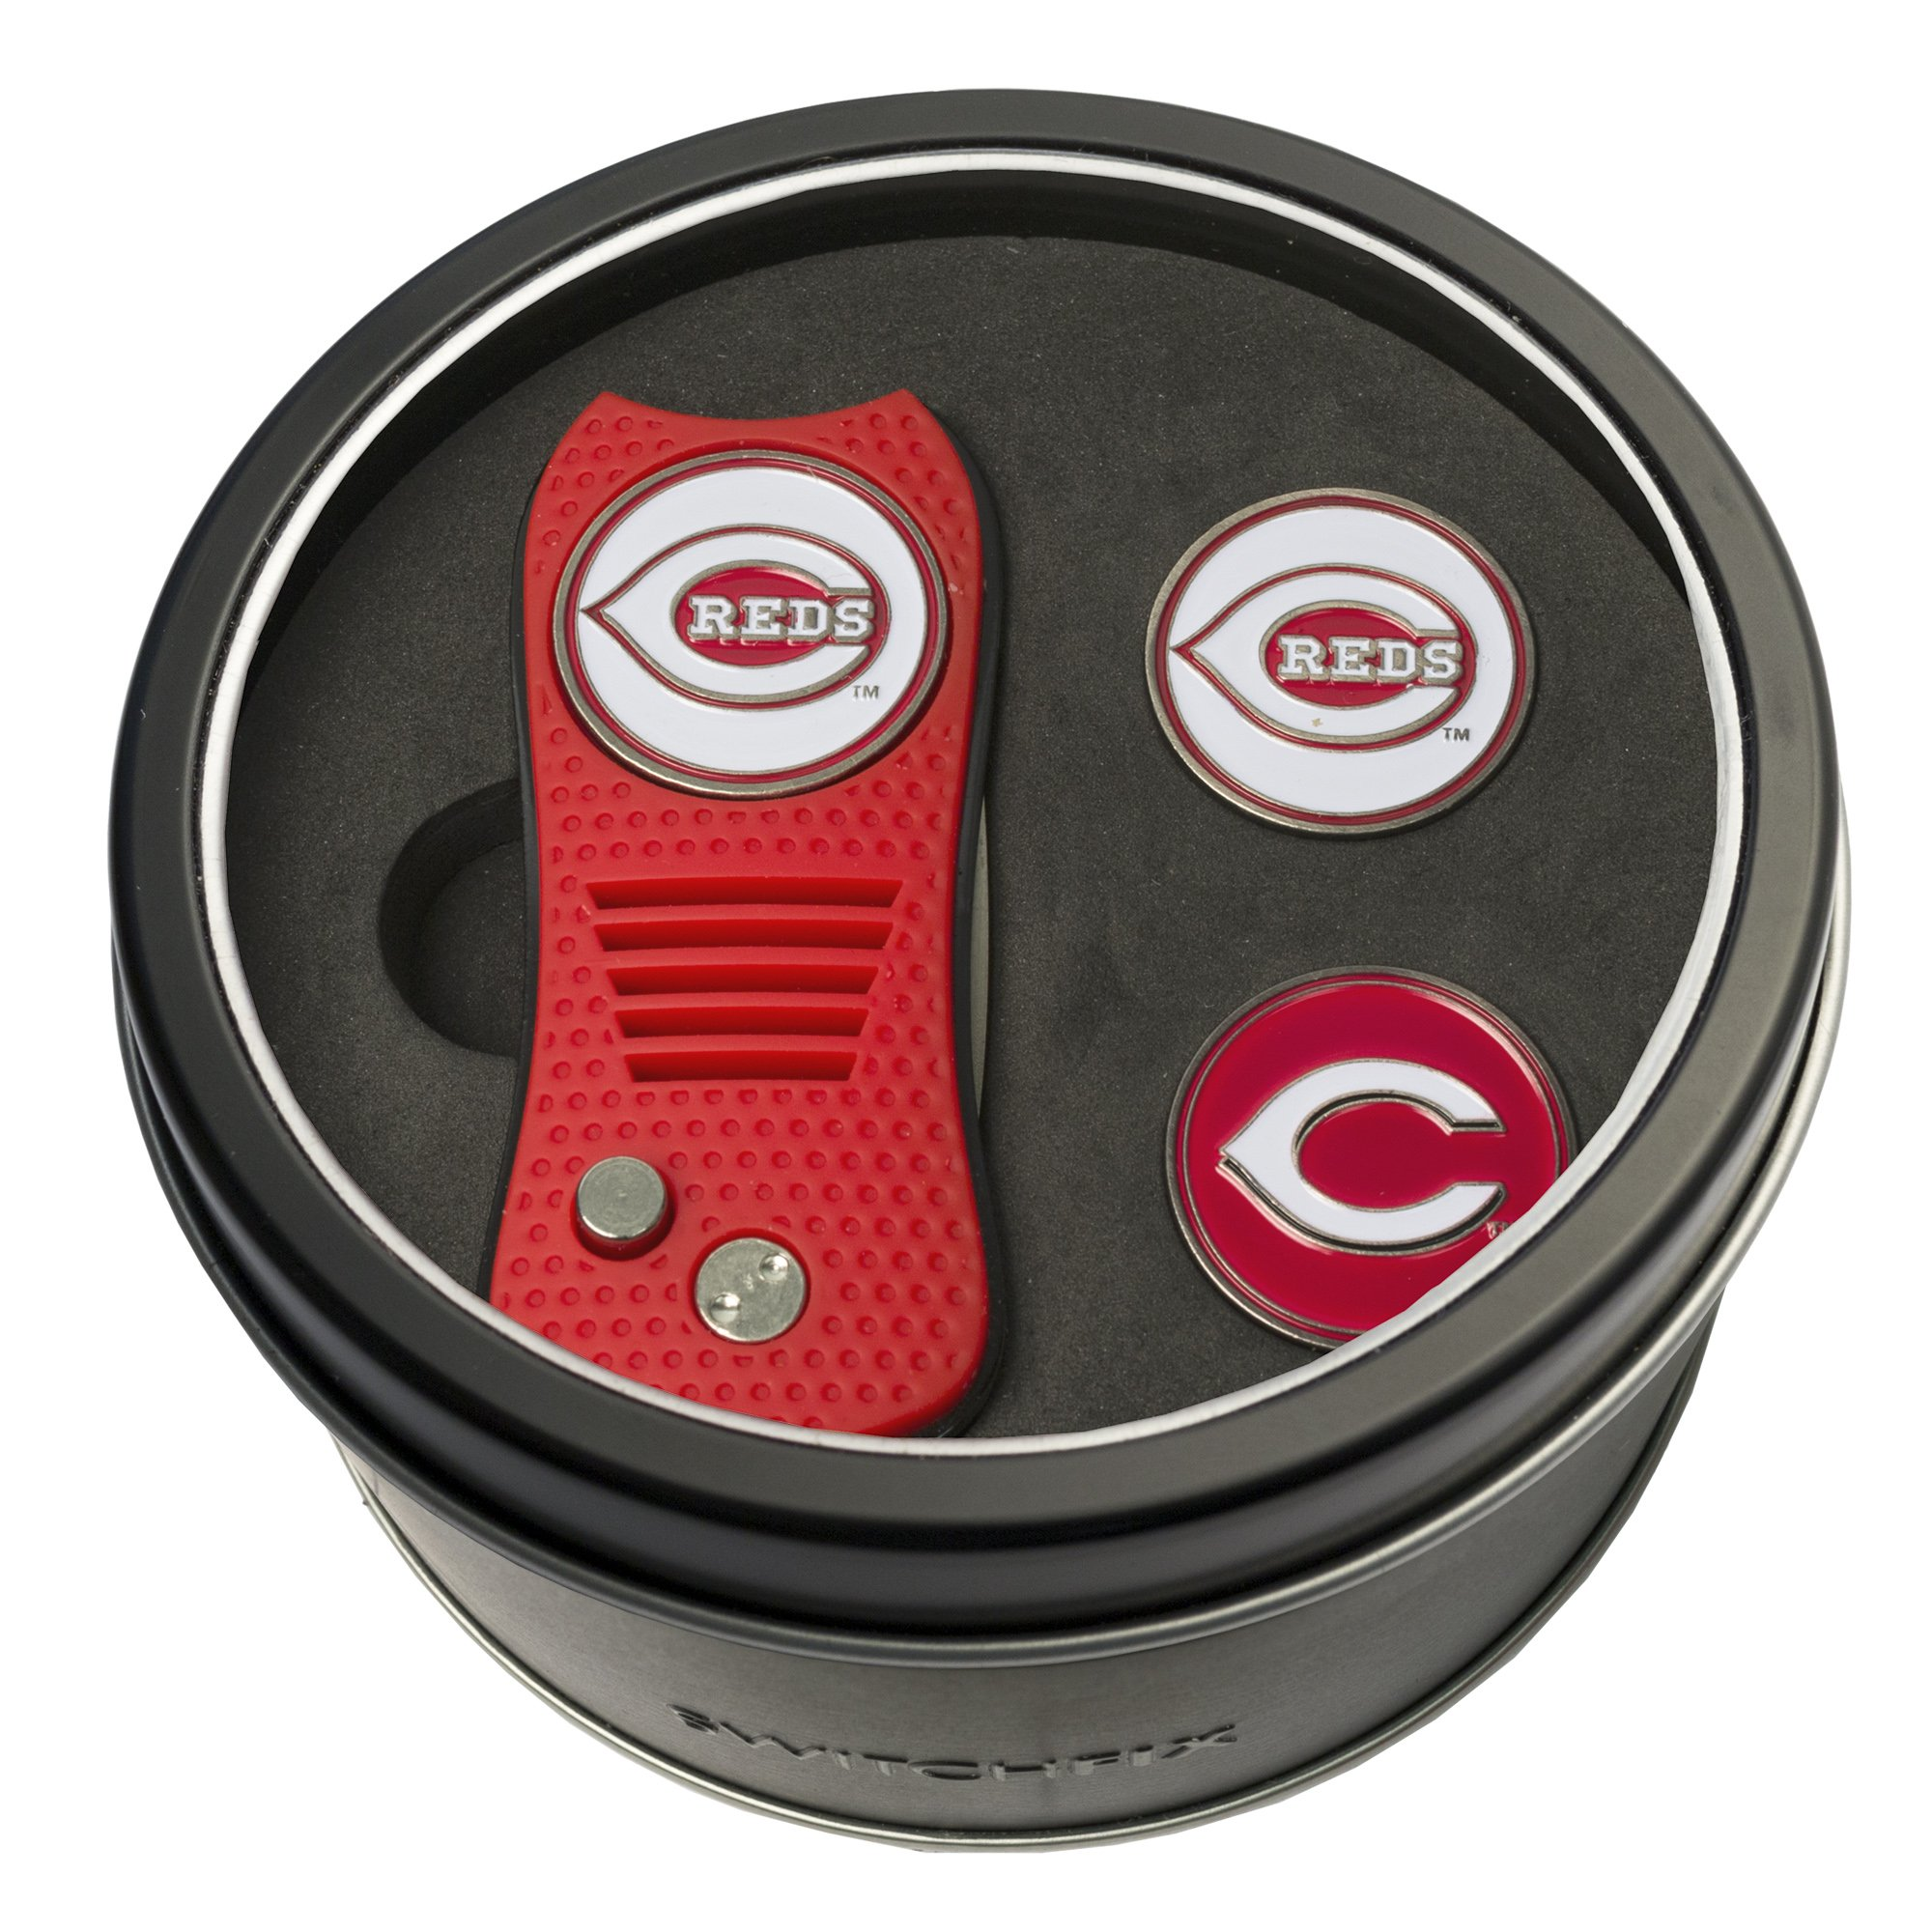 Team Golf MLB Cincinnati Reds Gift Set Switchblade Divot Tool with 3 Double-Sided Magnetic Ball Markers, Patented Single Prong Design, Causes Less Damage to Greens, Switchblade Mechanism by Team Golf